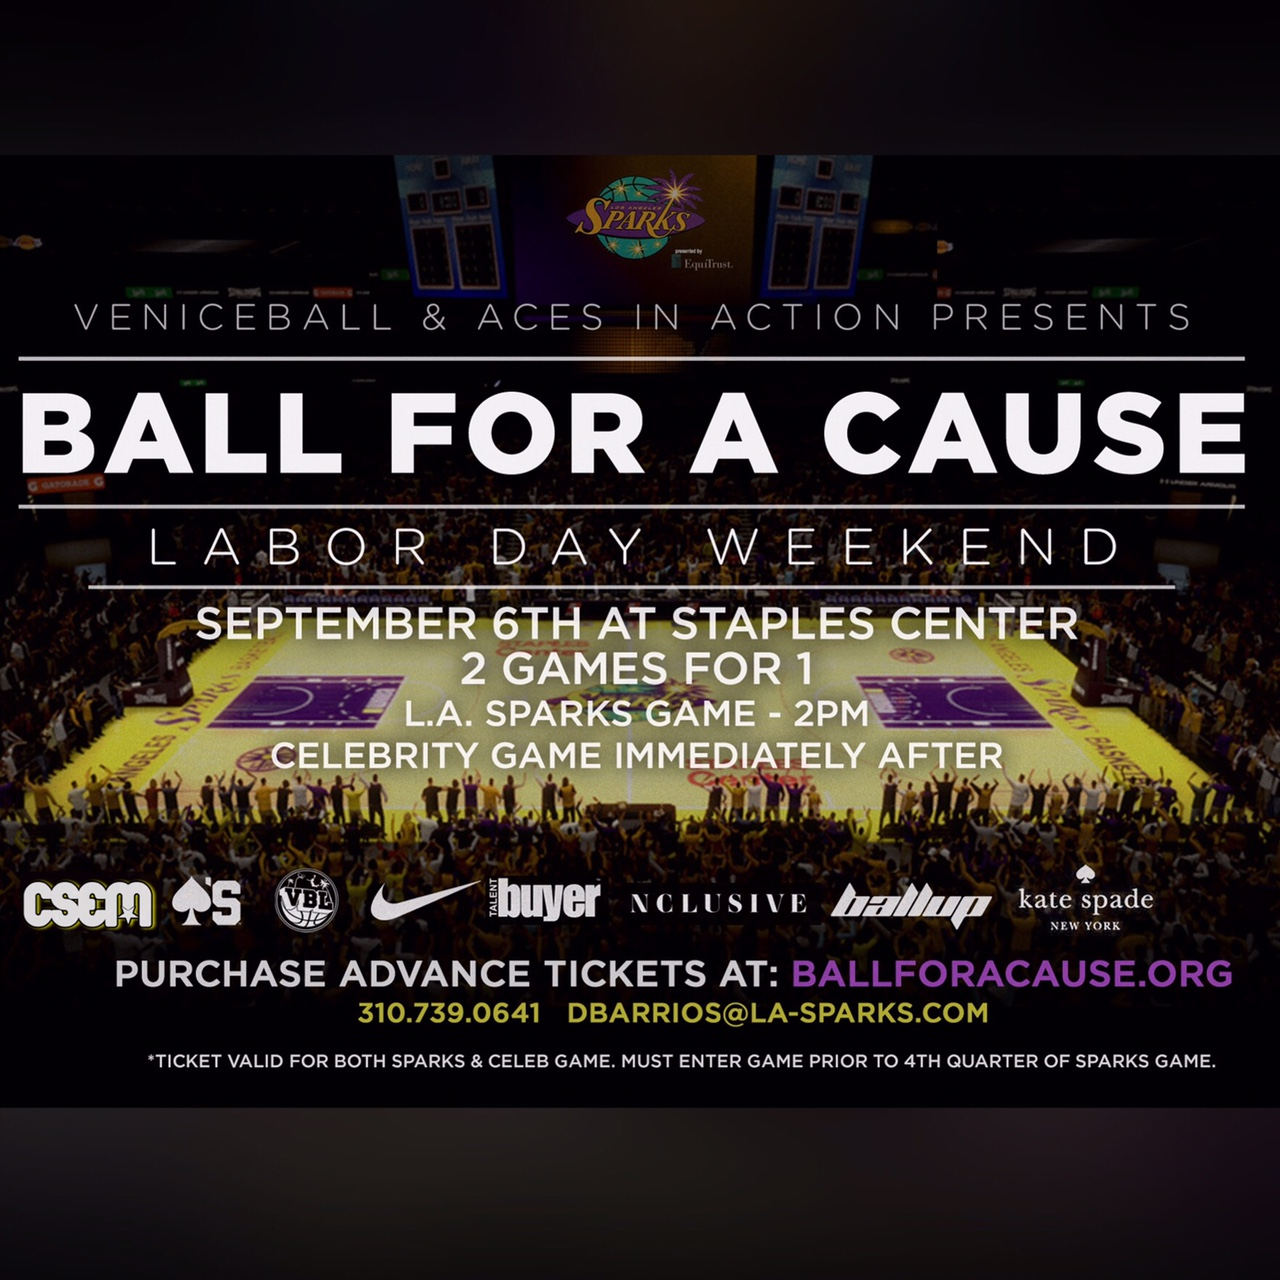 BALL FOR A CAUSE CELEBRITY GAME